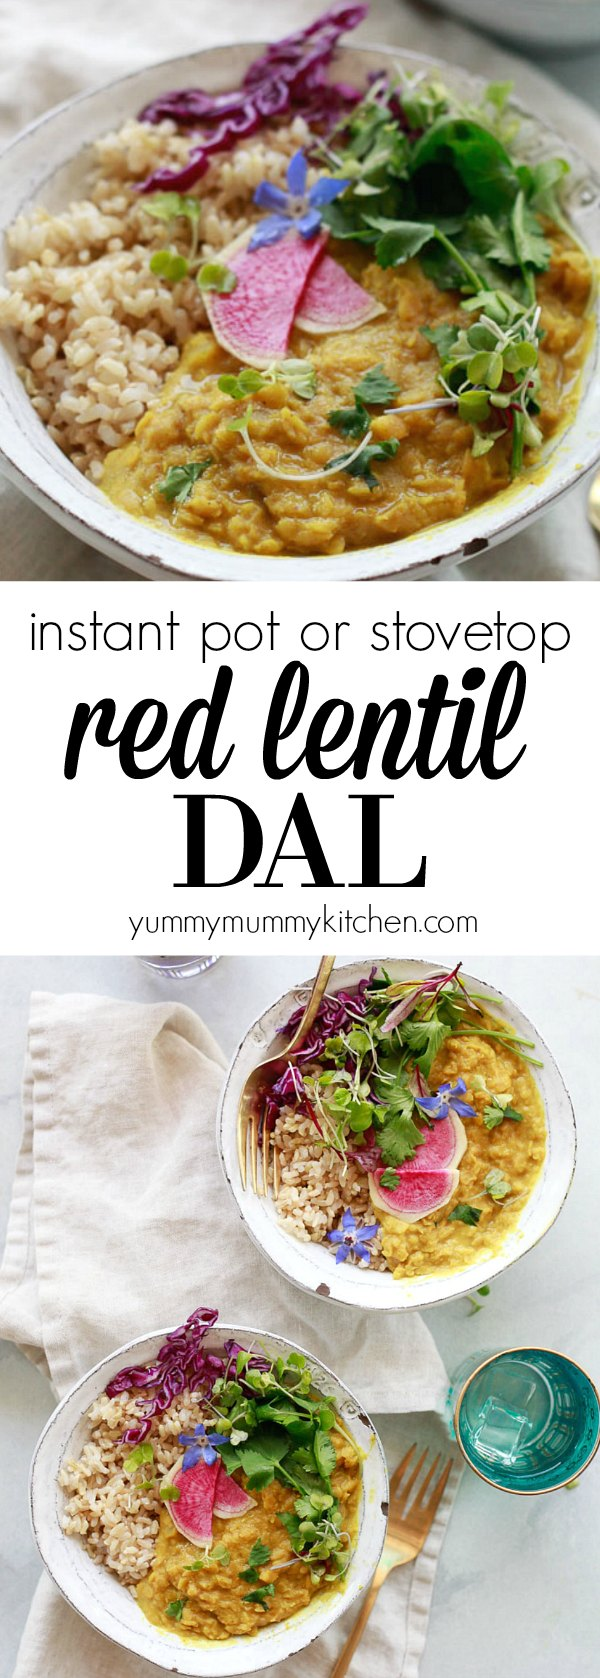 Easy Red Lentil (Masoor) Dal Recipe for the Instant Pot or